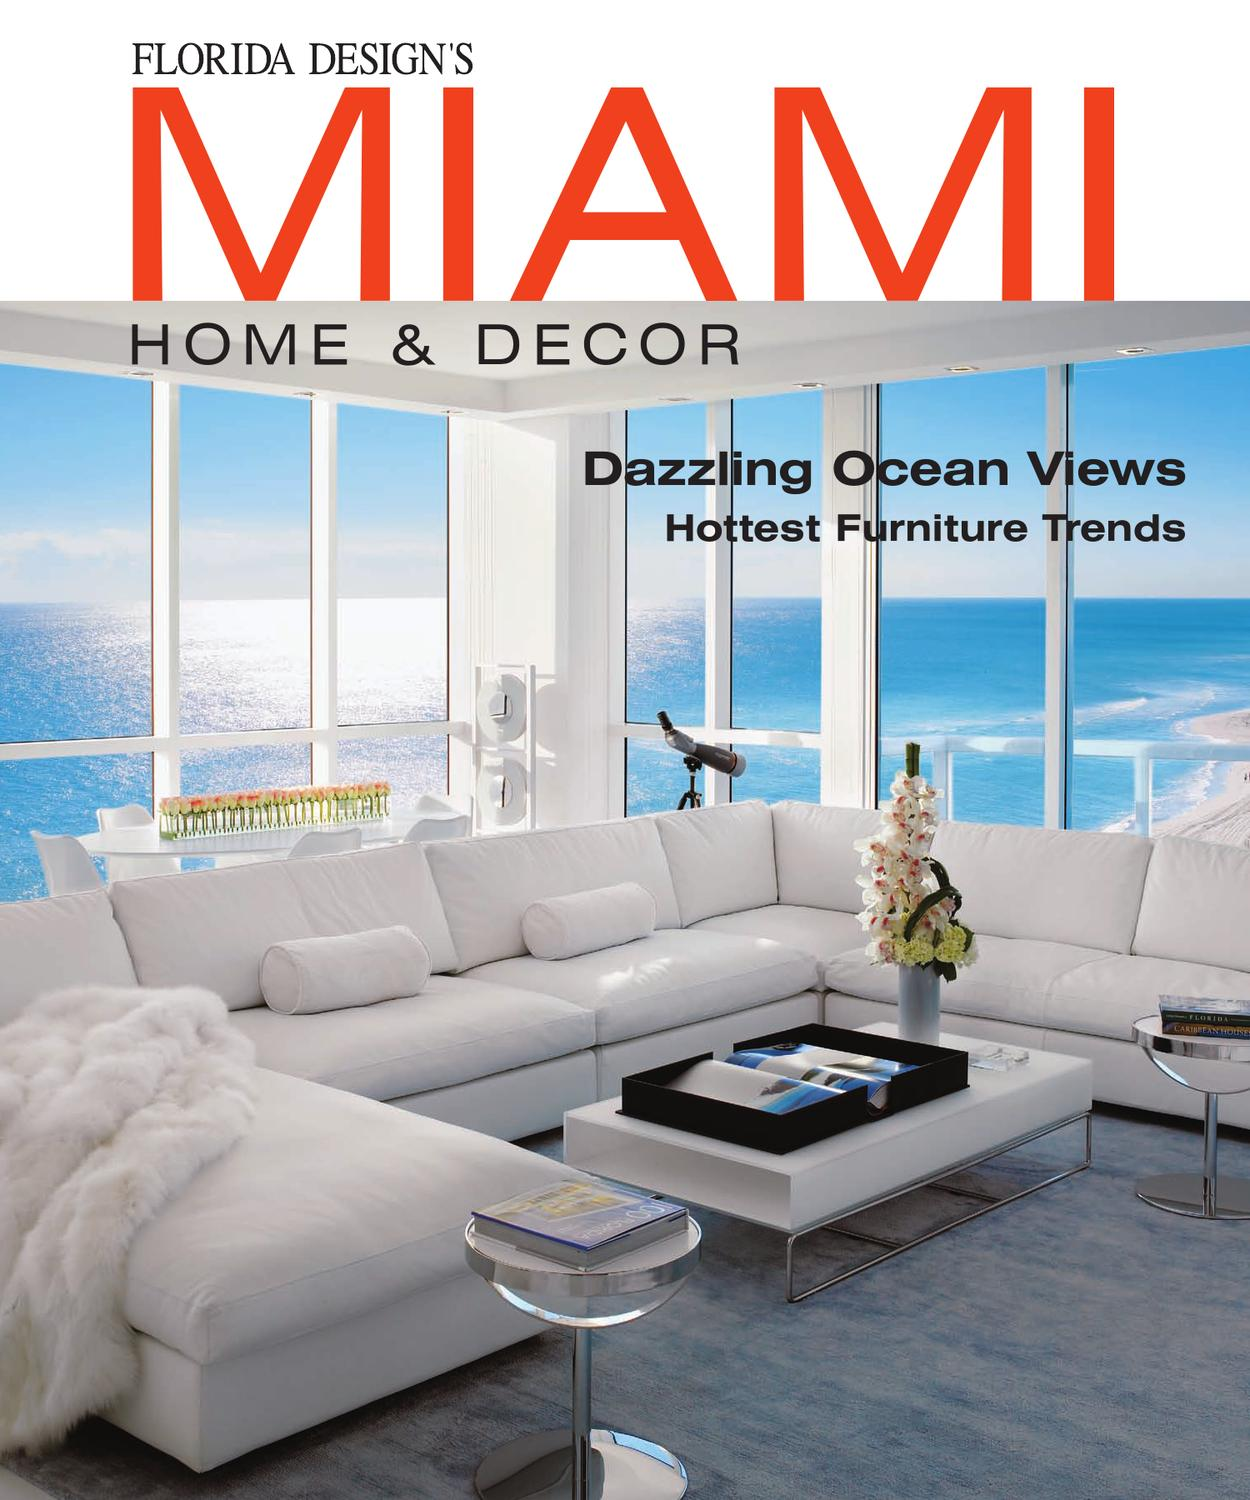 Home Design Magazine miami home & decor magazinebill fleak - issuu